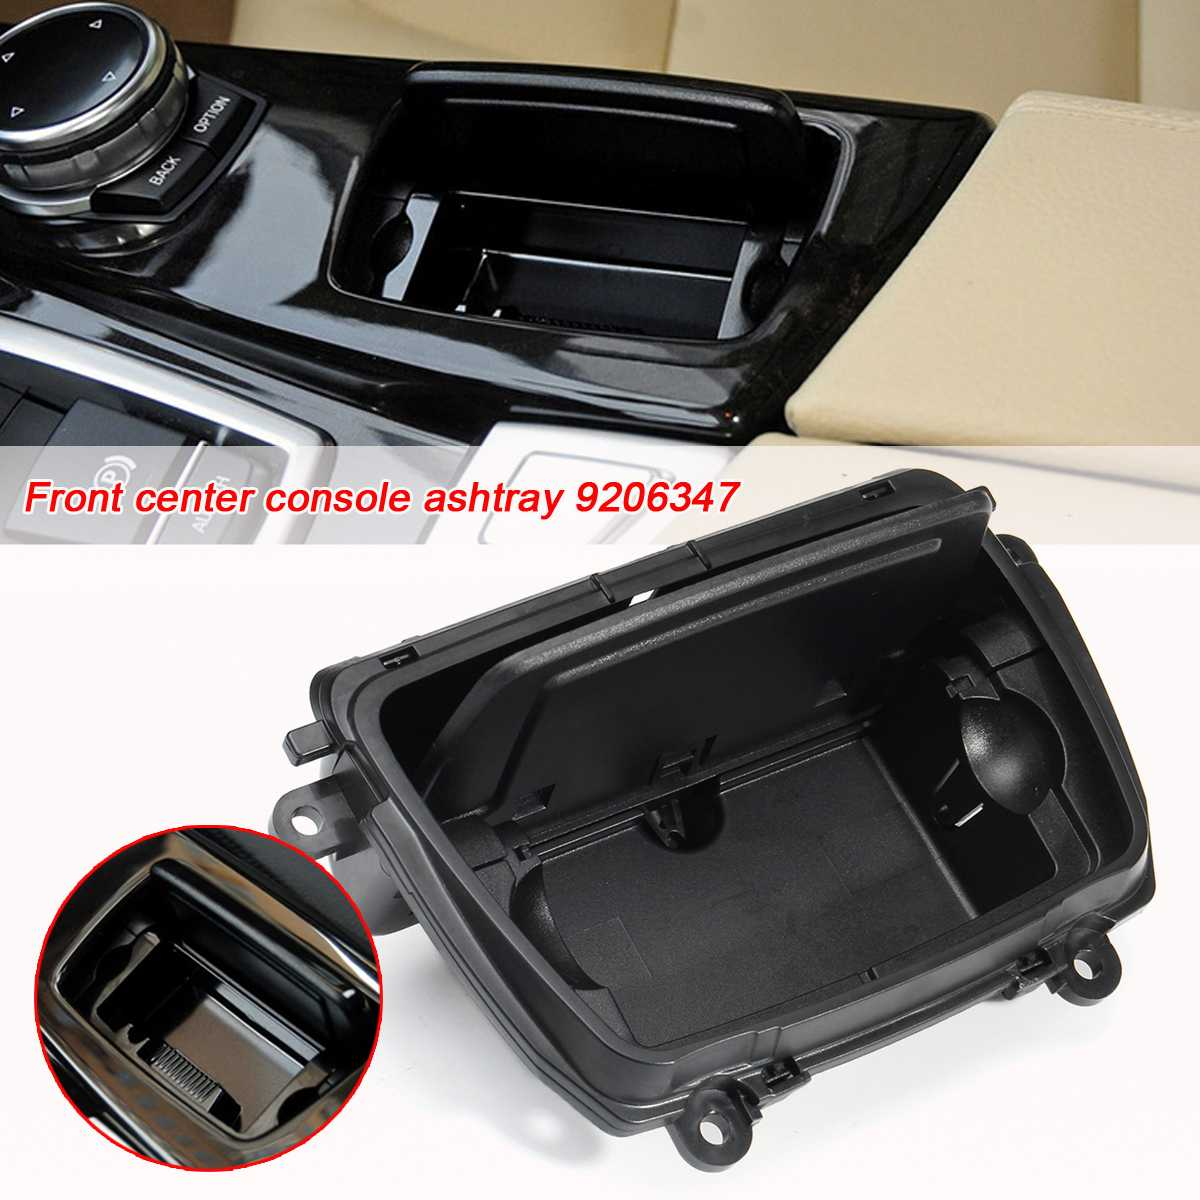 Automobile Ashtrays Car Center Console Ashtray F10 Assembly Ash Box Cover For BMW 5 Series F10 F11 F18 Ashtray 520 51169206347